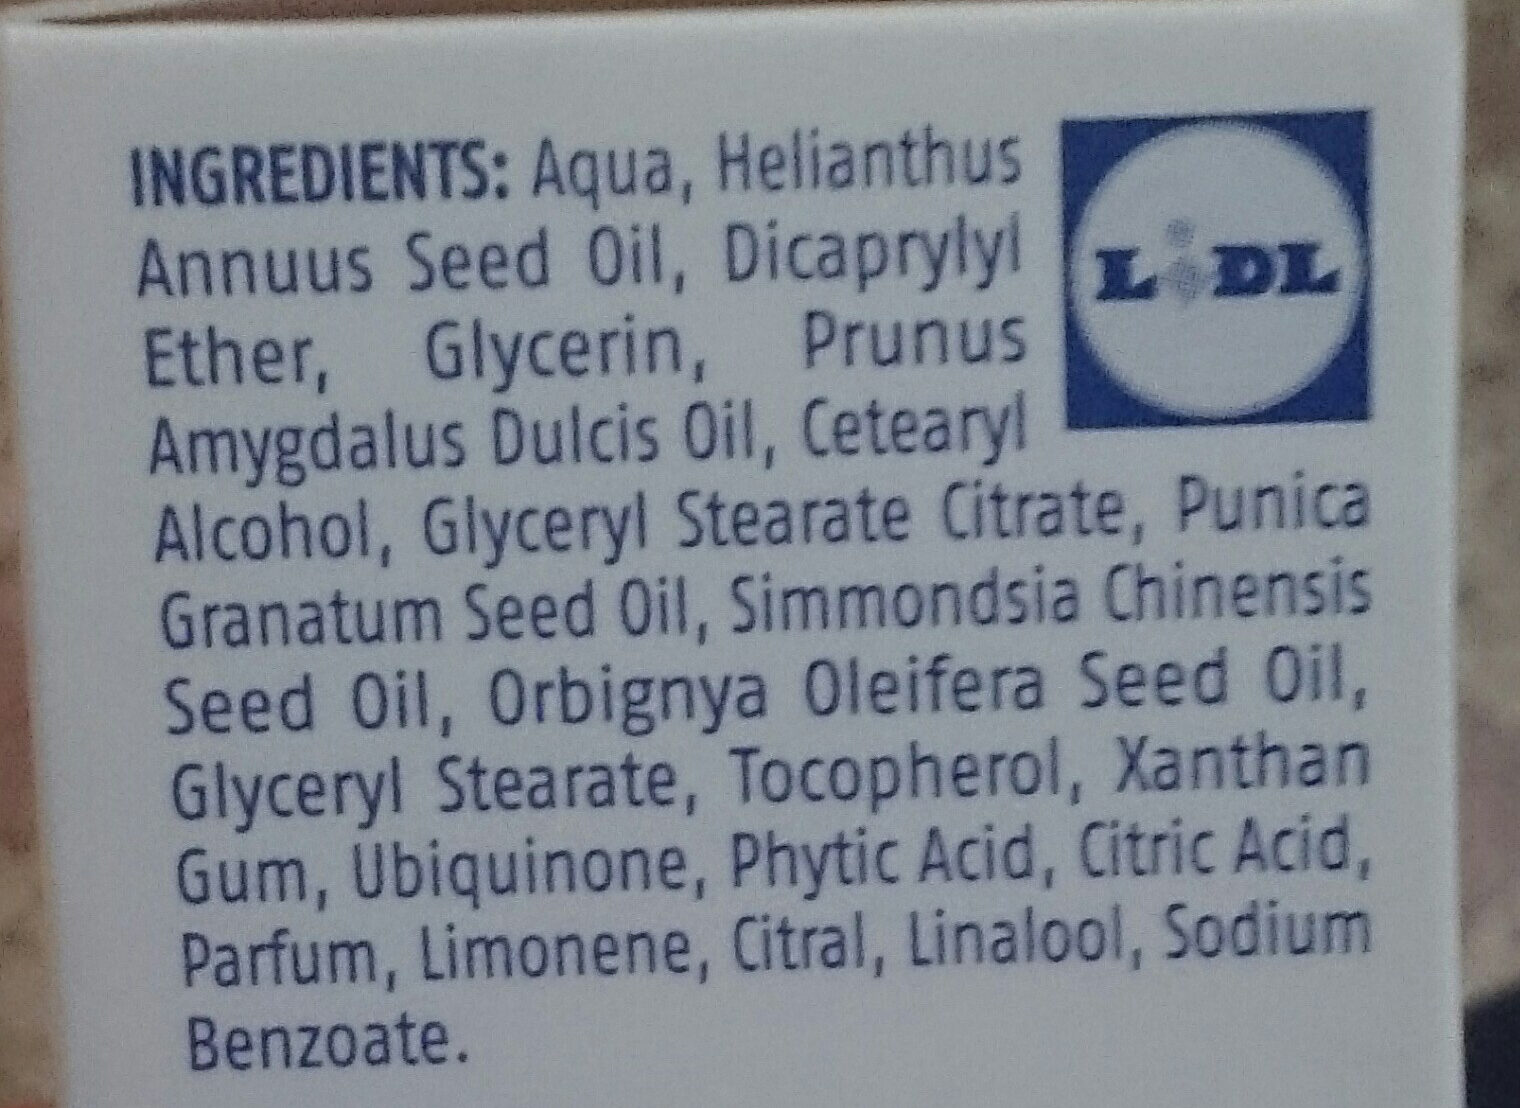 9 - Ingredients